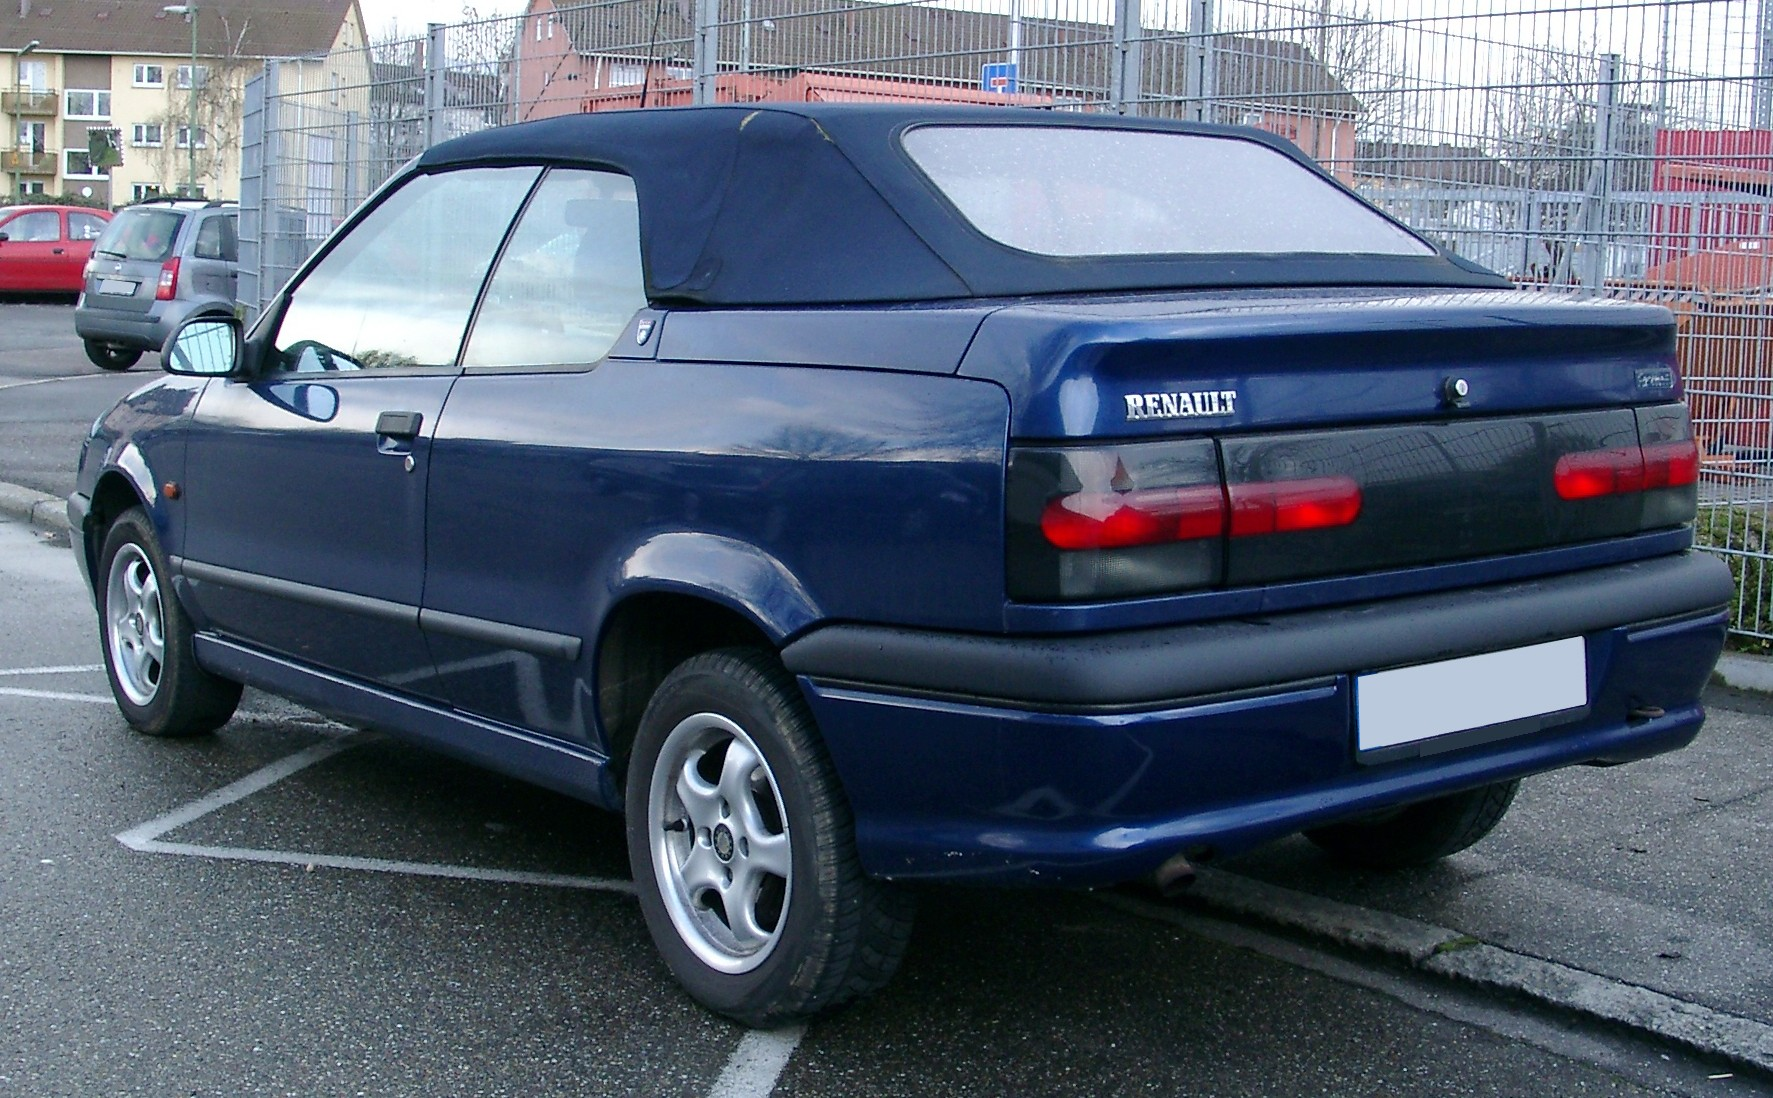 1993 Renault 19 Ii Europa Pictures Information And Specs Auto Fuse Box In Infiniti G35 Cars 10